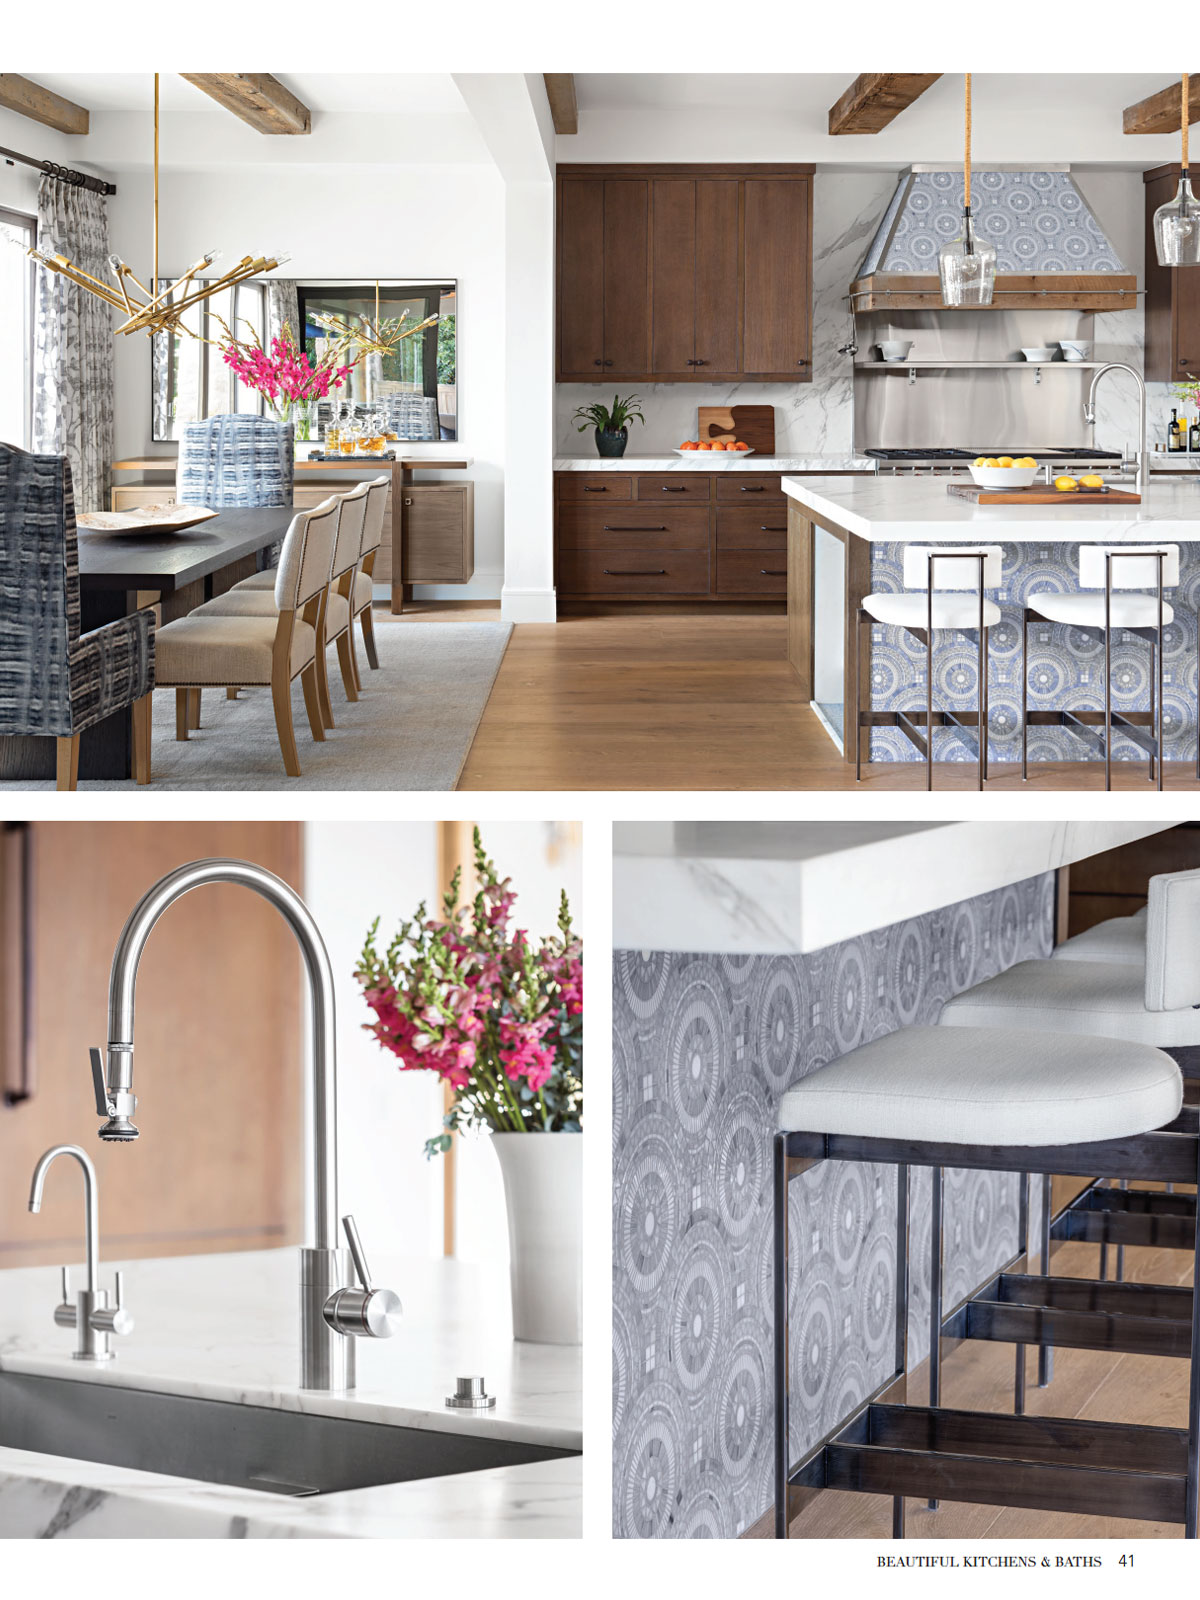 Better Homes  Gardens Beautiful Kitchens  Baths